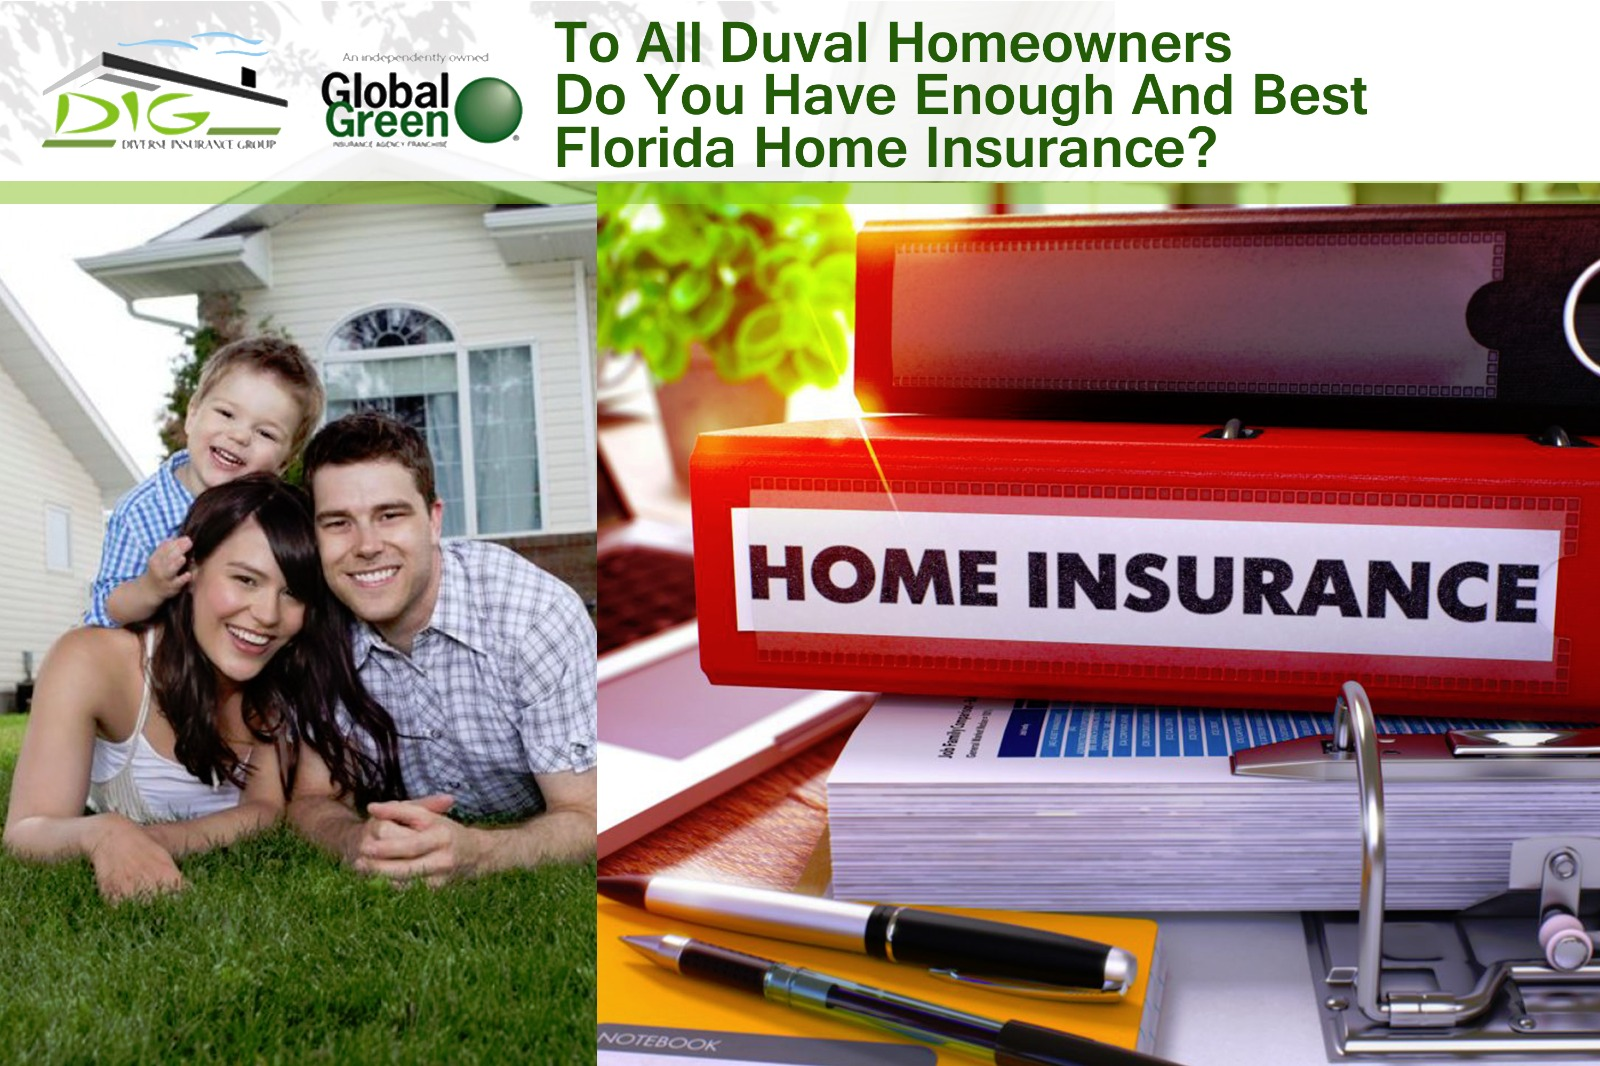 Homeowners Do You Have Enough And Best Florida Home Insurance: homeowners insurance florida